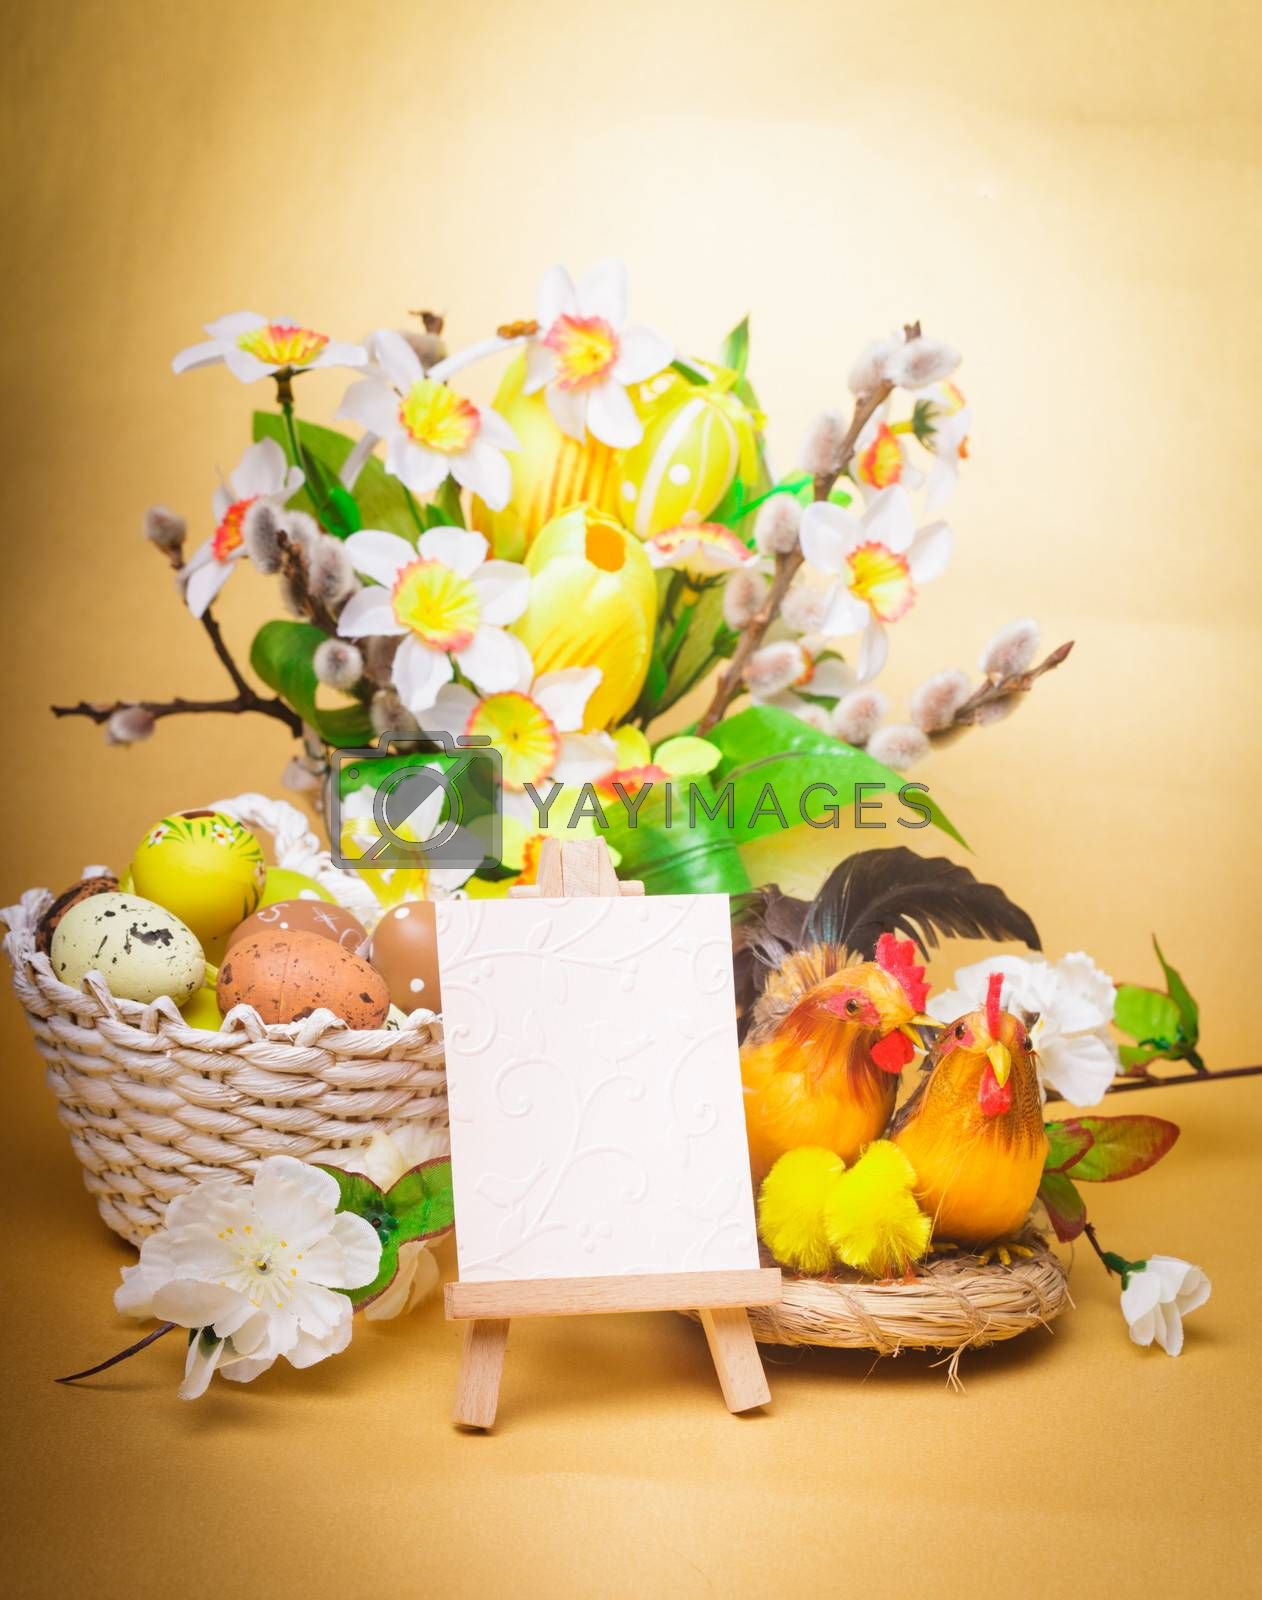 Easter greetings with eggs, flowers and chiken